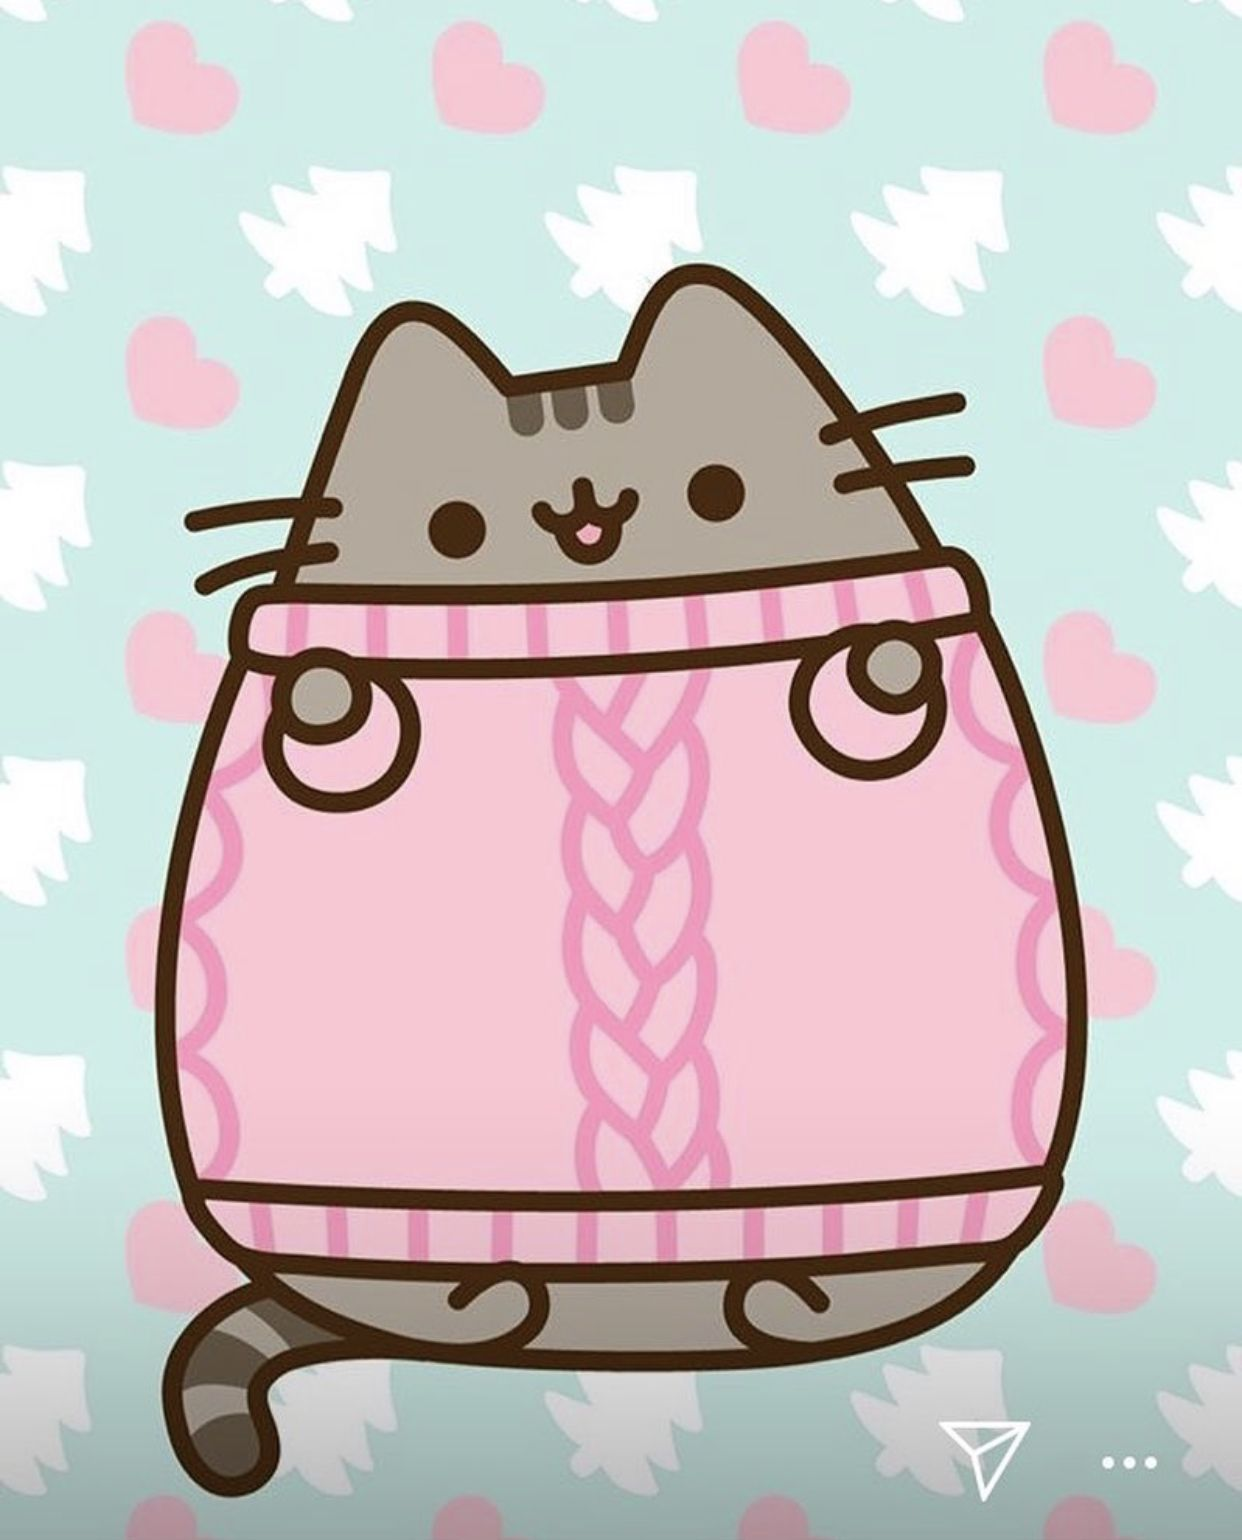 Pin By Elizabeth Lahr On Kawaii With Images Pusheen Cute Pink